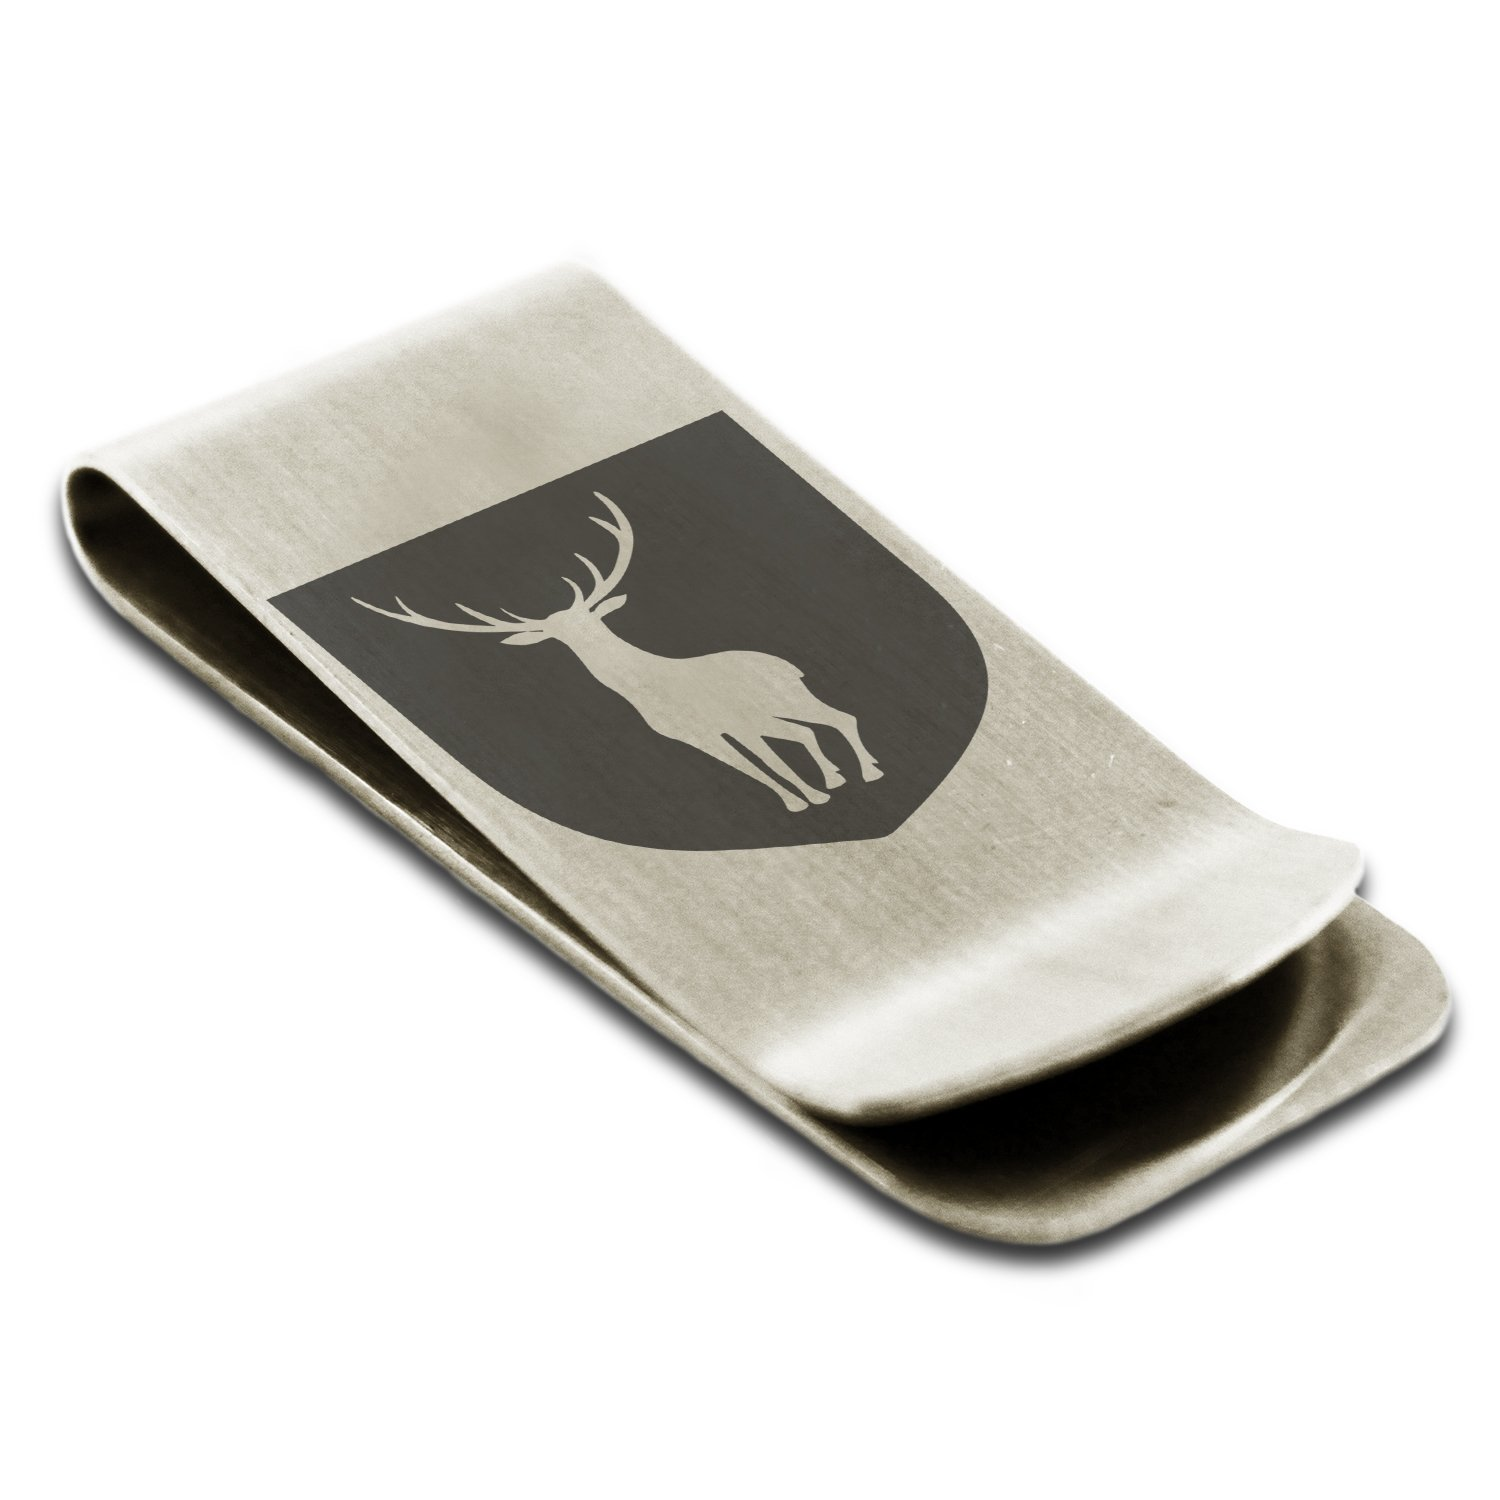 Stainless Steel Stag Purity Coat of Arms Shield Symbol Engraved Money Clip Credit Card Holder